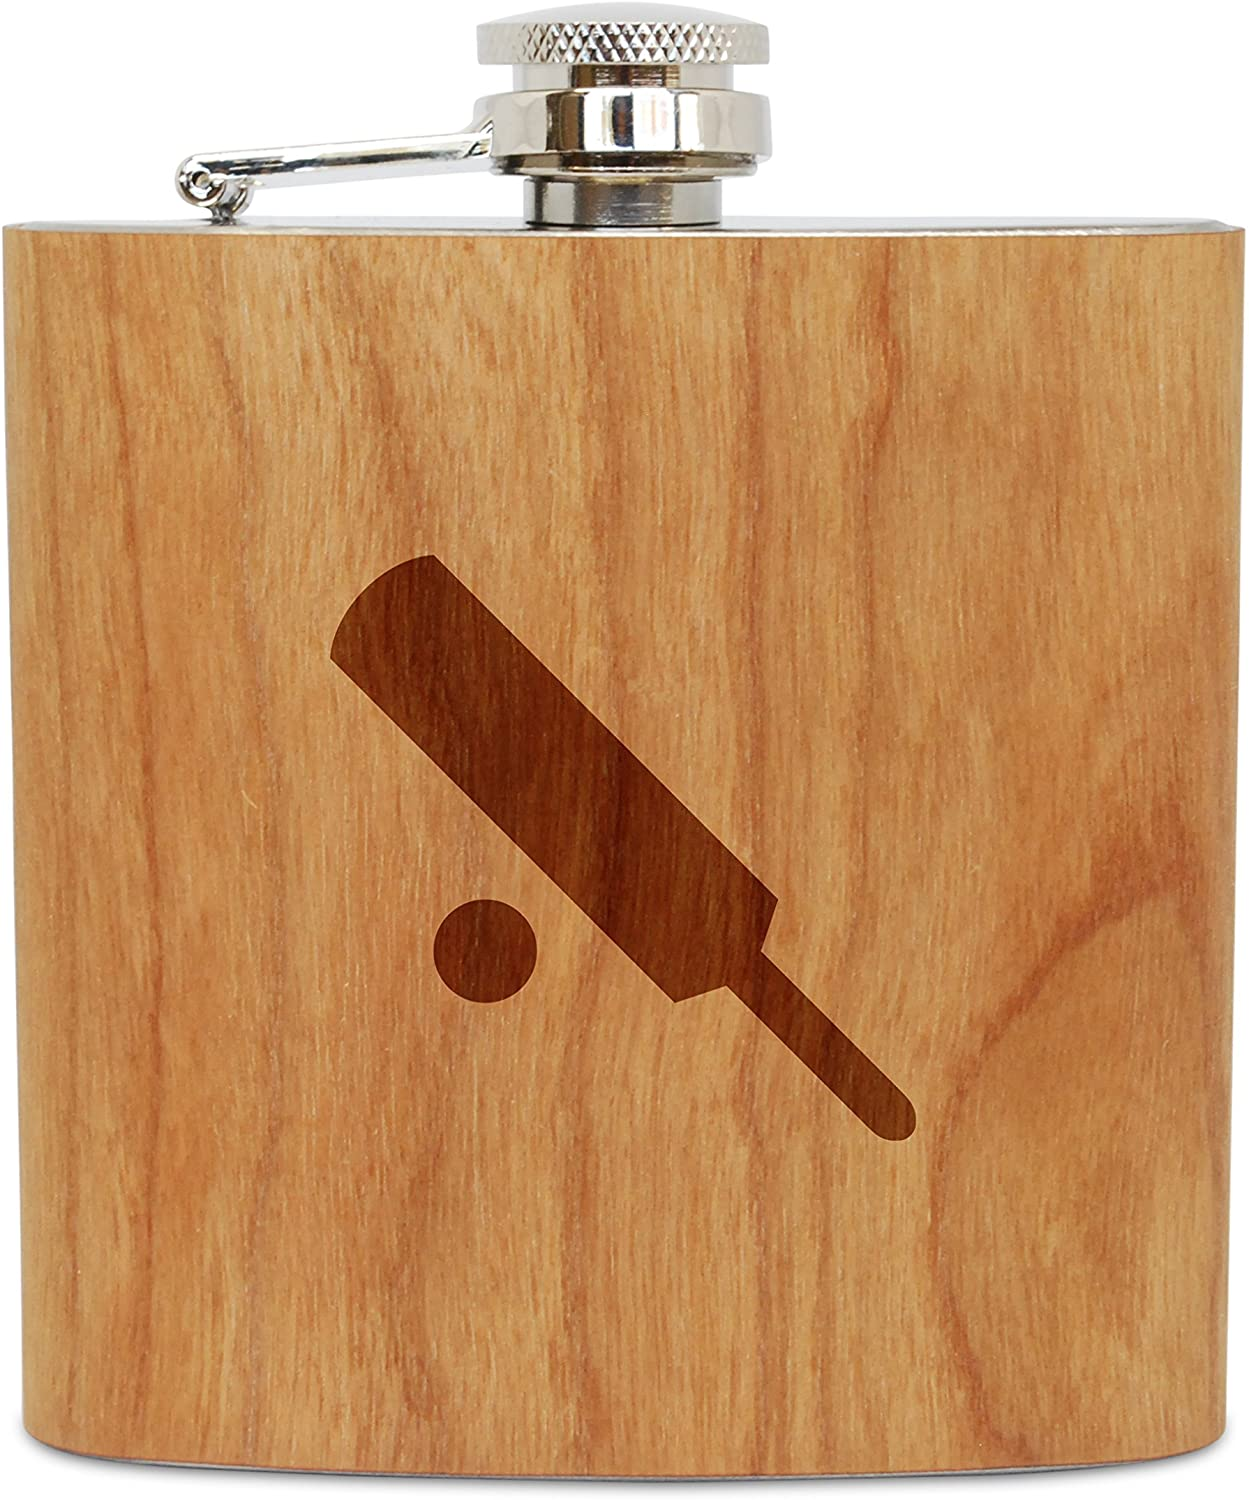 WOODEN ACCESSORIES COMPANY Cherry Wood Flask With Stainless Steel Body - Laser Engraved Flask With Cricket Design - 6 Oz Wood Hip Flask Handmade In USA